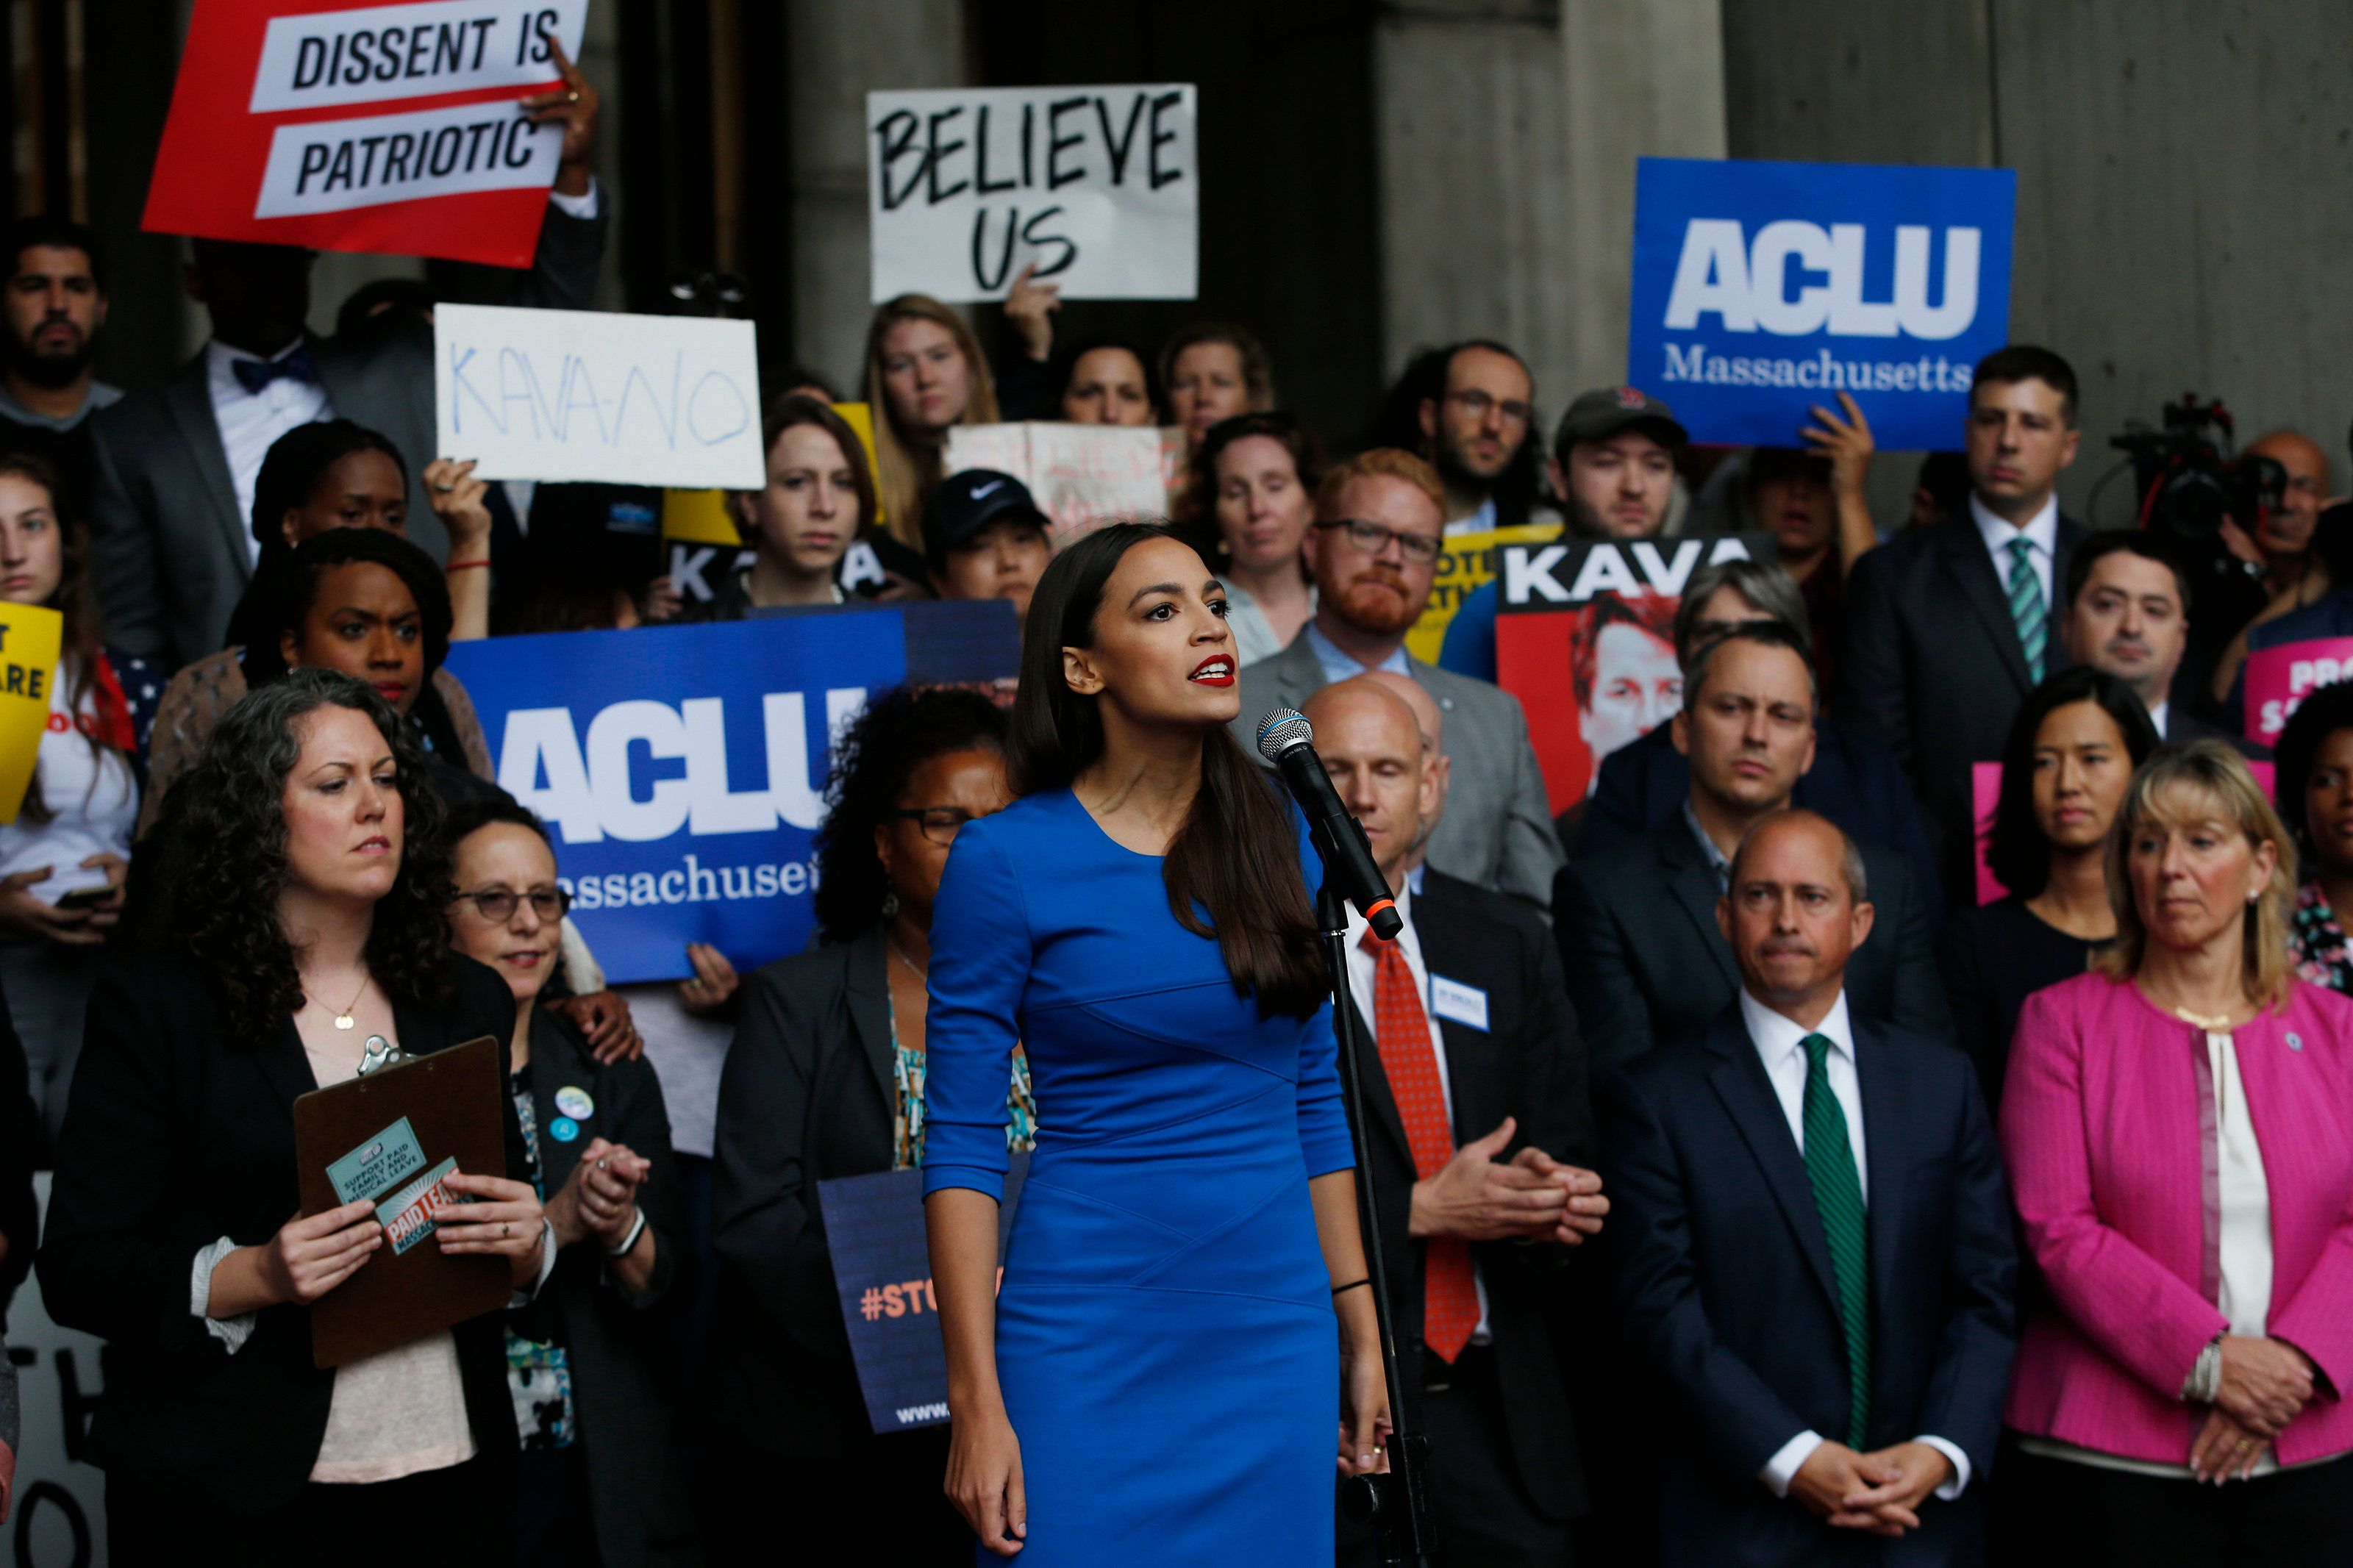 Democratic Socialist Alexandria Ocasio-Cortez: We Need to Confront Trump's Creeping Authoritarianism